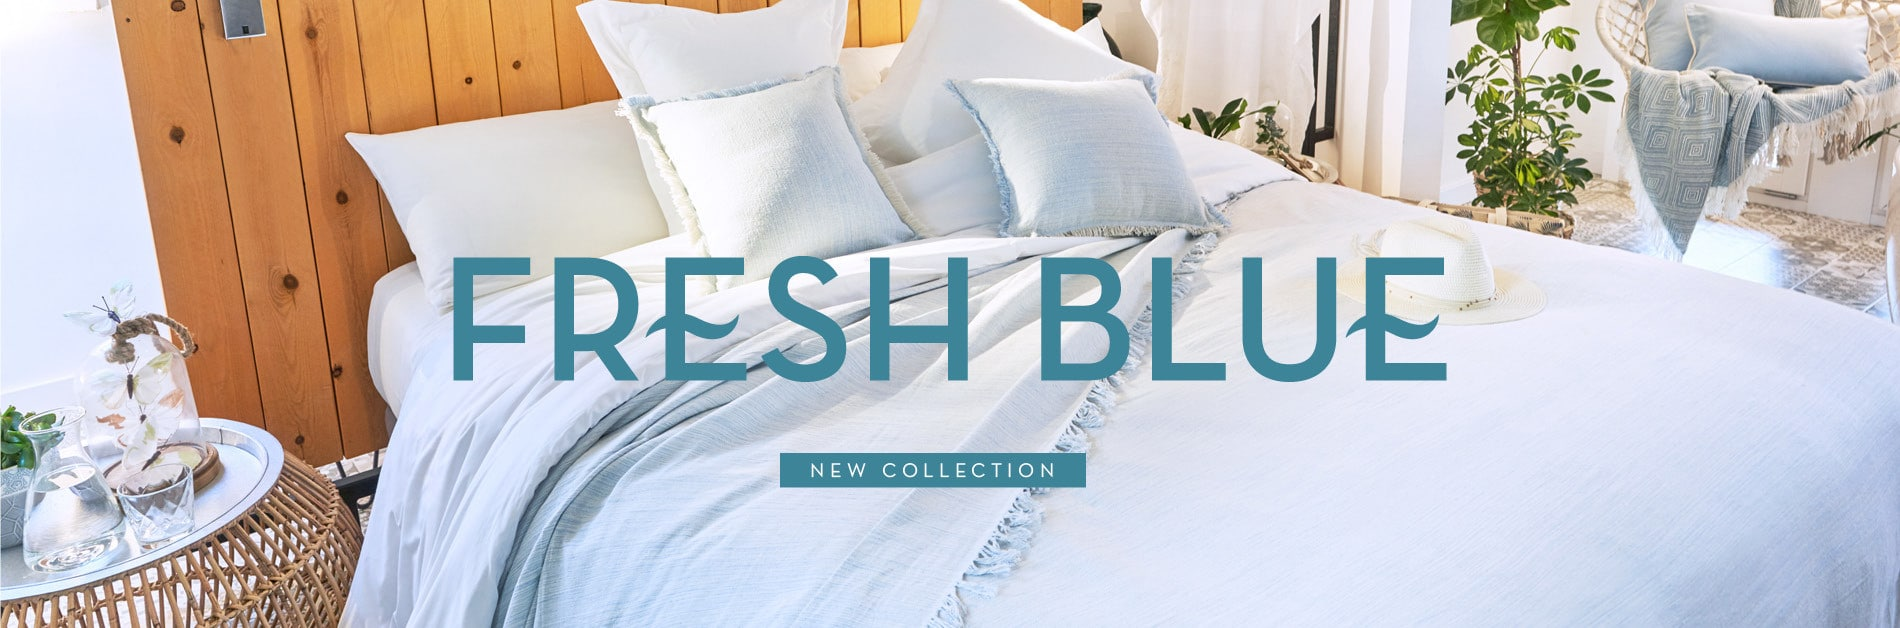 DISCOVER OUR NEW COLLECTION - FRESH BLUE